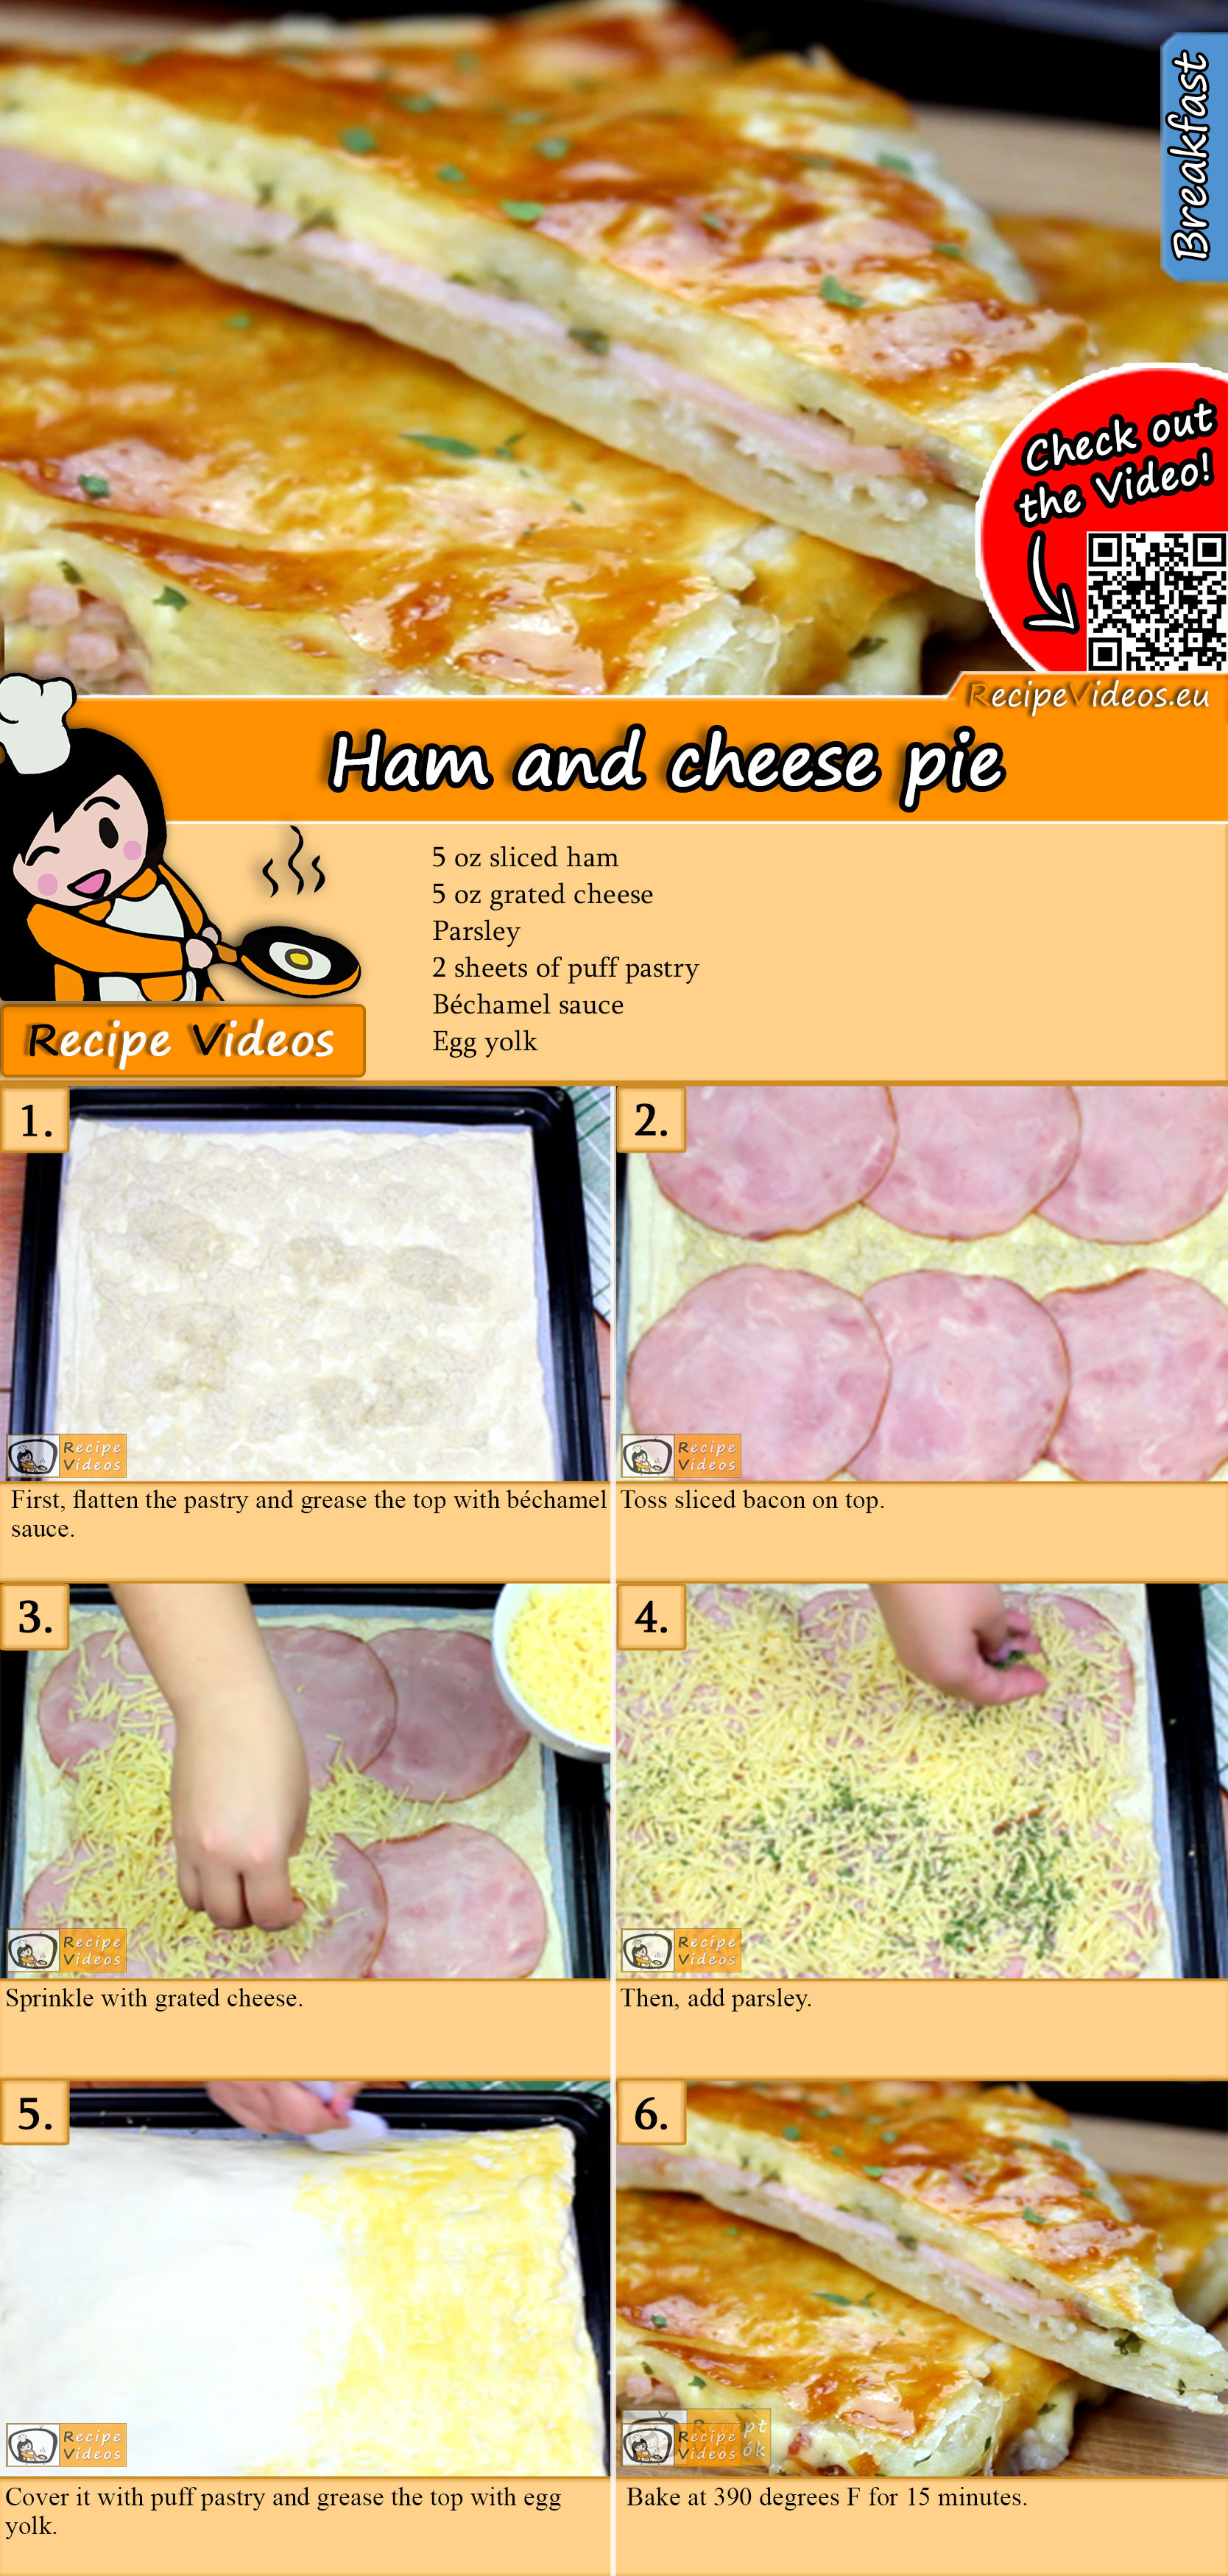 Ham and cheese pie recipe with video